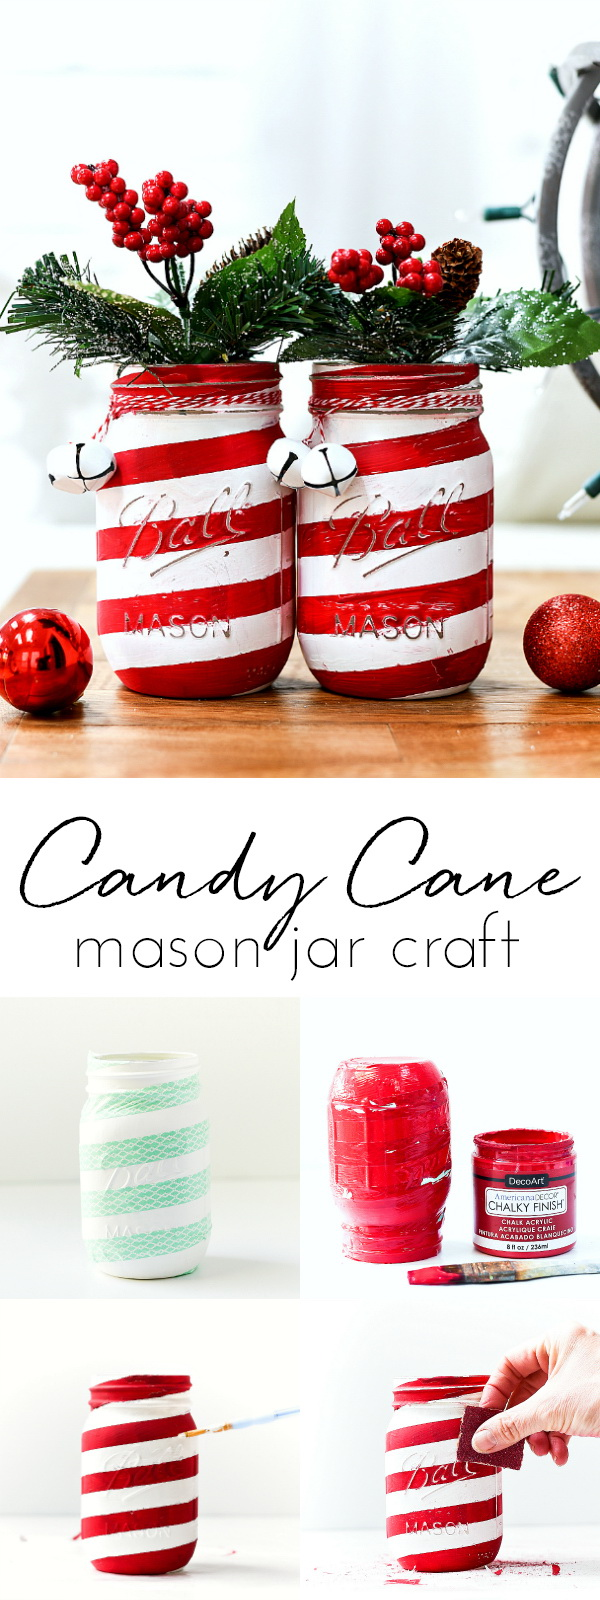 Holiday Candy Cane Mason Jars. Mason jars always make an affordable Christmas gift and decoration. Make your home special with these festive candy cane mason jars into your holiday decor.